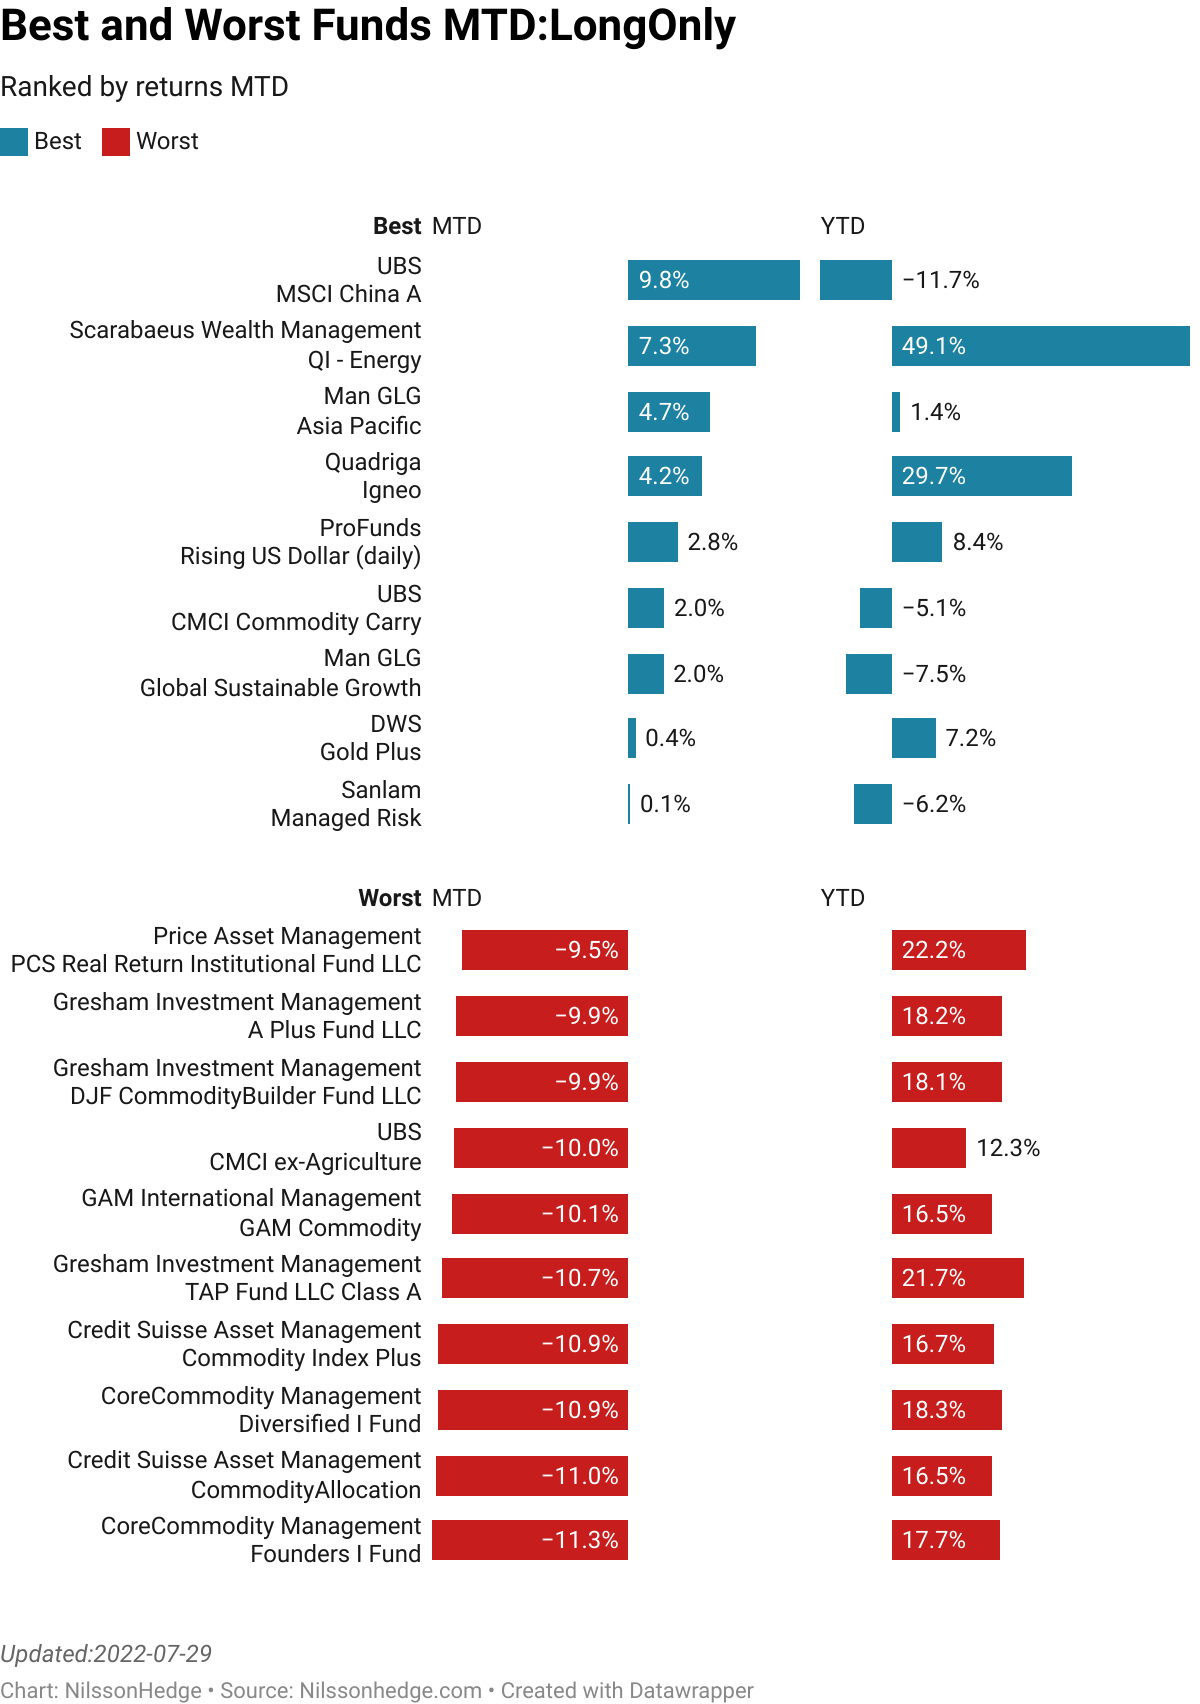 Best/Worst Long Only funds MTD, Performance, Flash Report, UBS, Power, Swisscanto, Picard, Commodity, Equity, Fixed Income